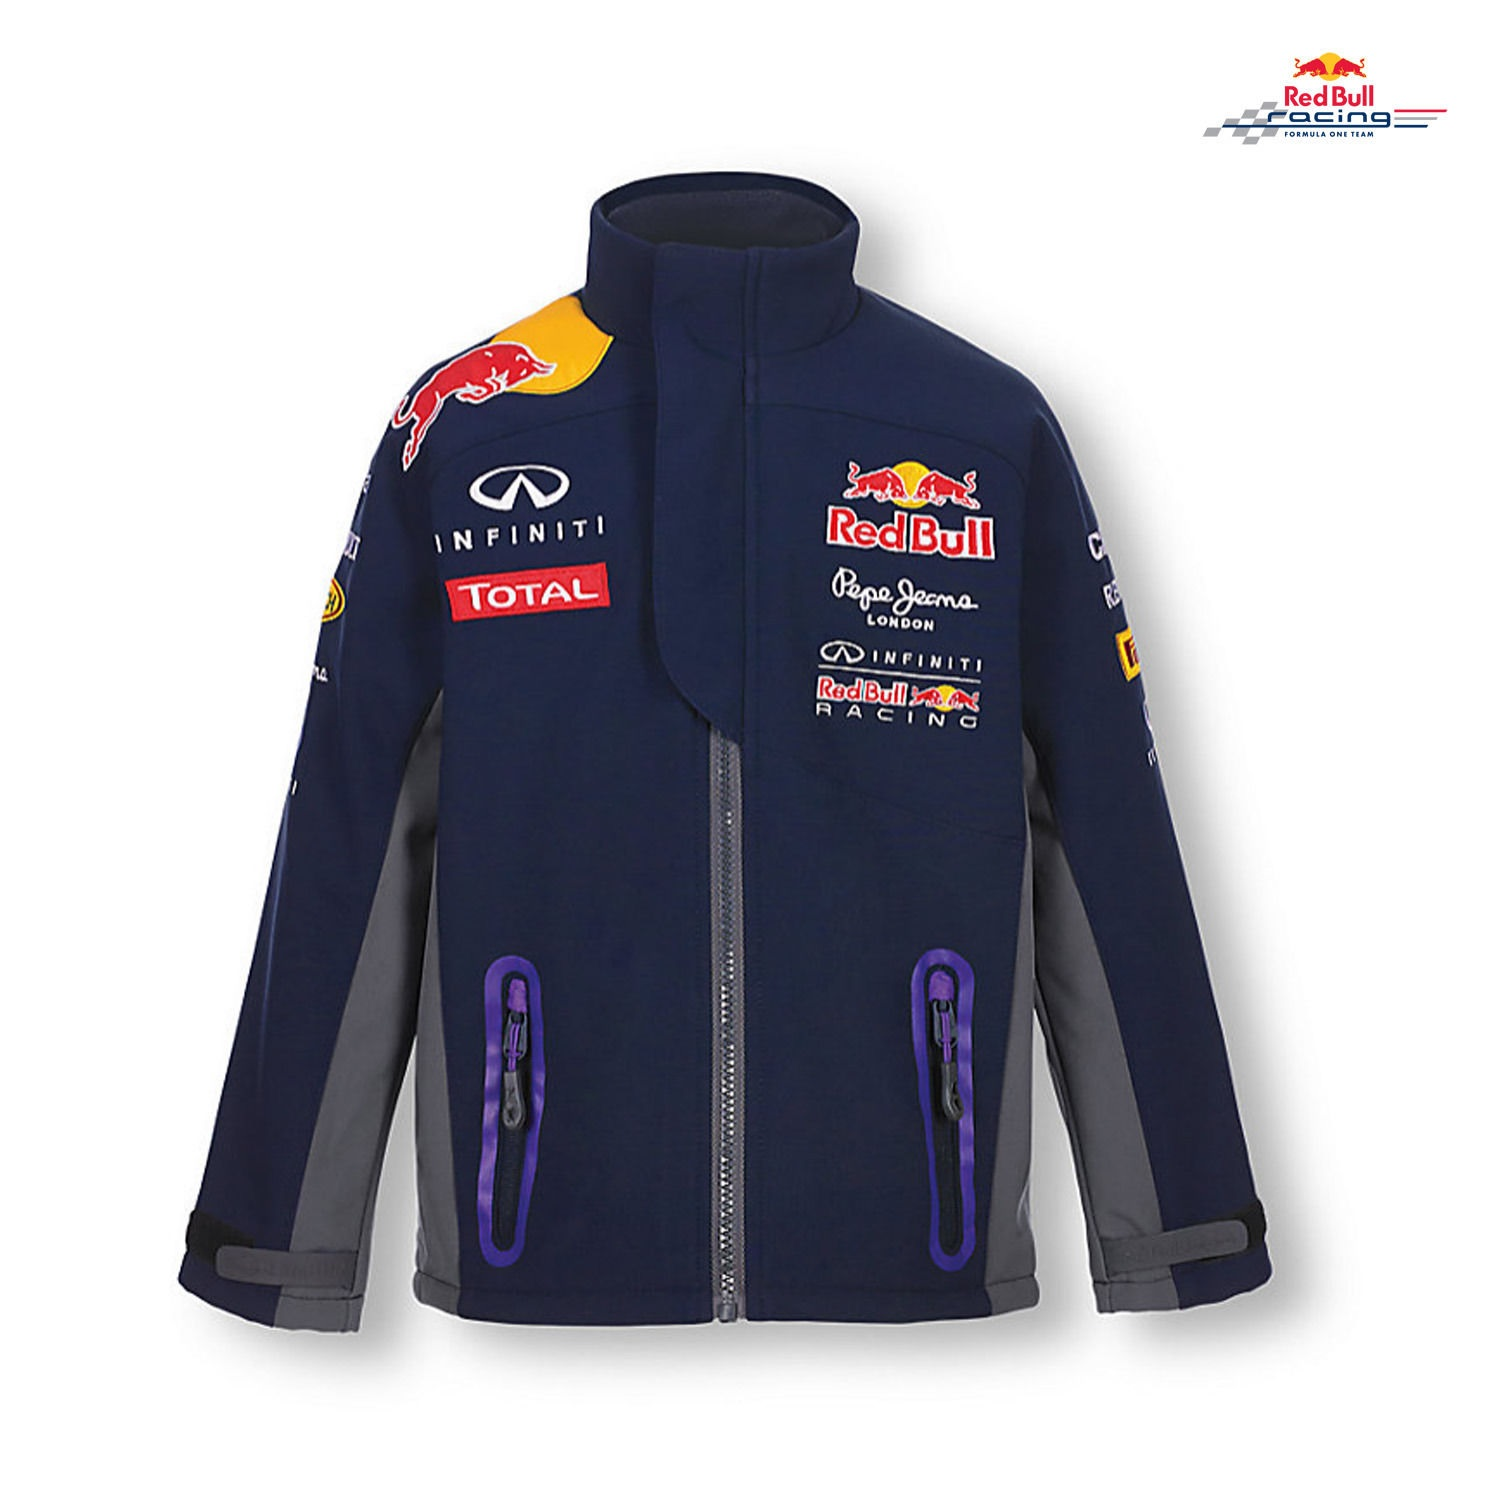 veste enfants softshell manteau red bull racing childrens formula one 1 f1 nouveau ebay. Black Bedroom Furniture Sets. Home Design Ideas